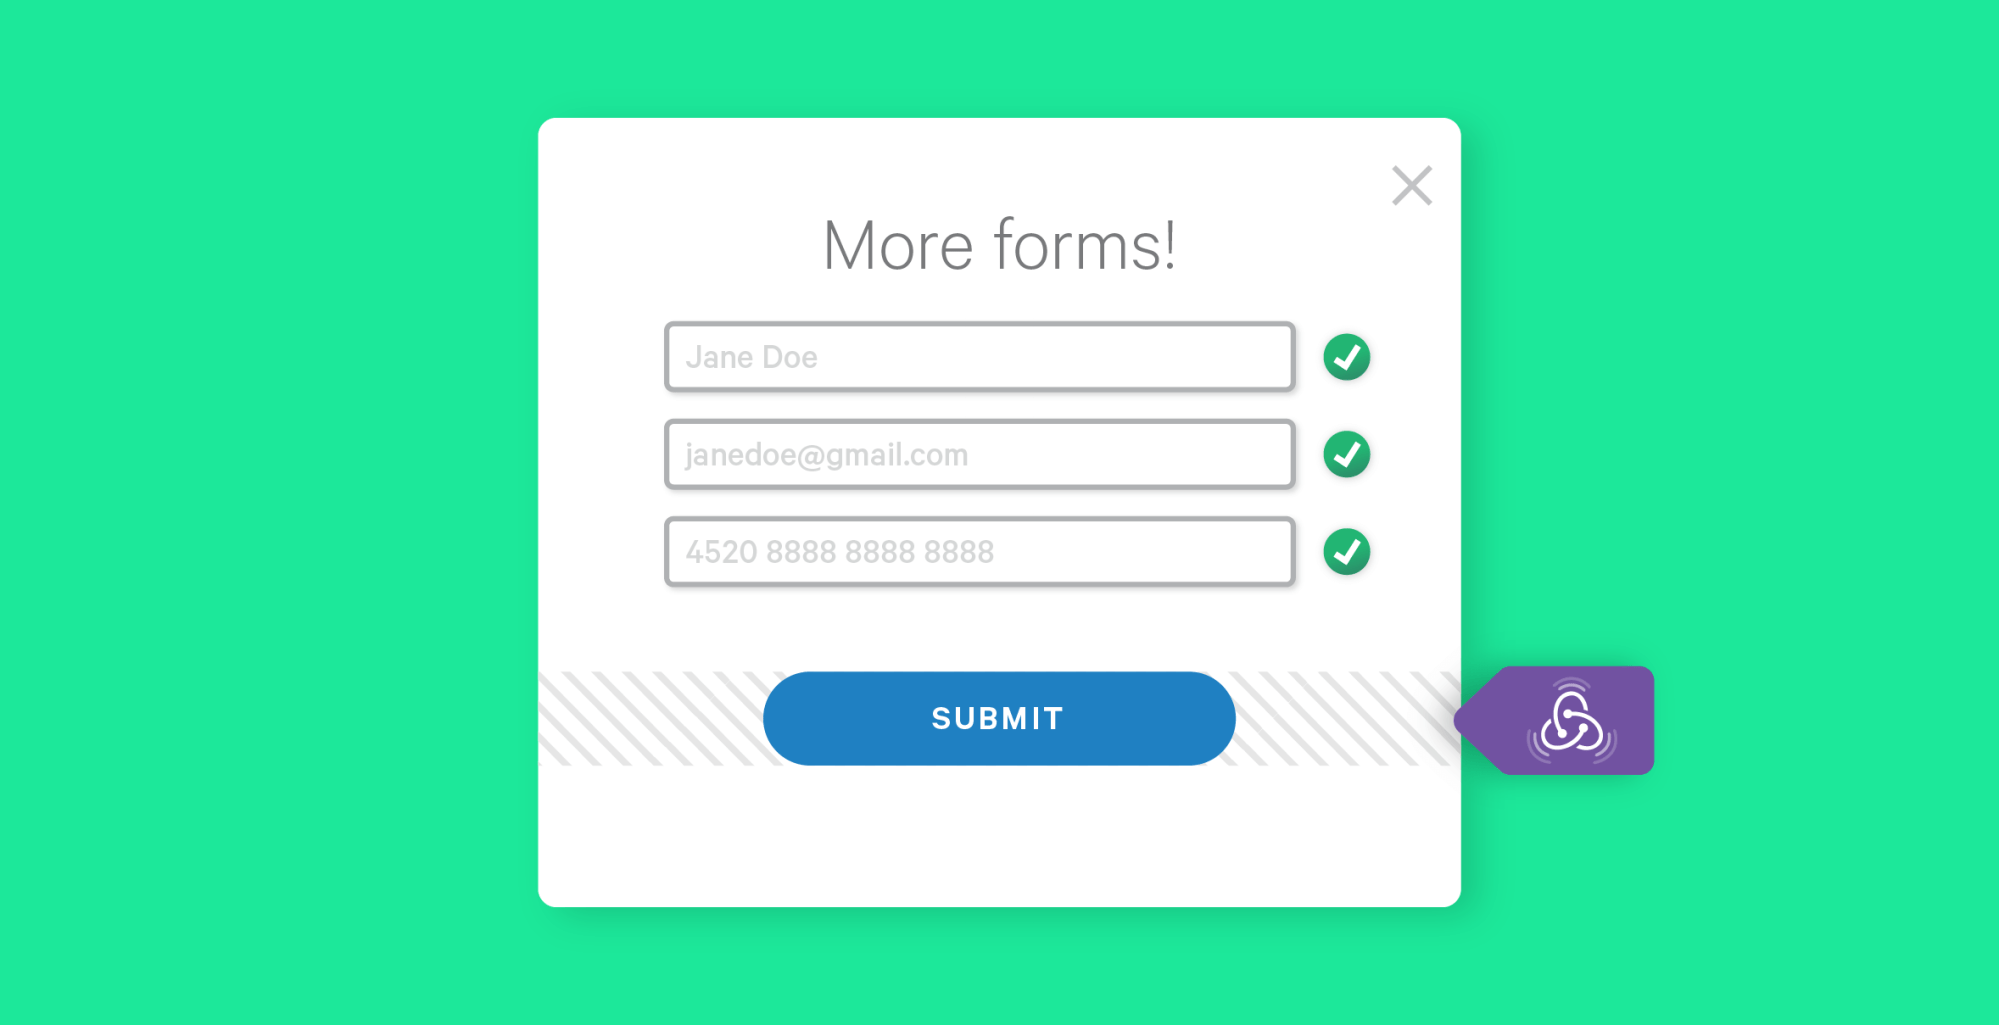 hight resolution of in creating forms with redux part i we hooked up our forms to redux learned about the reduxform hoc and field component styled our forms